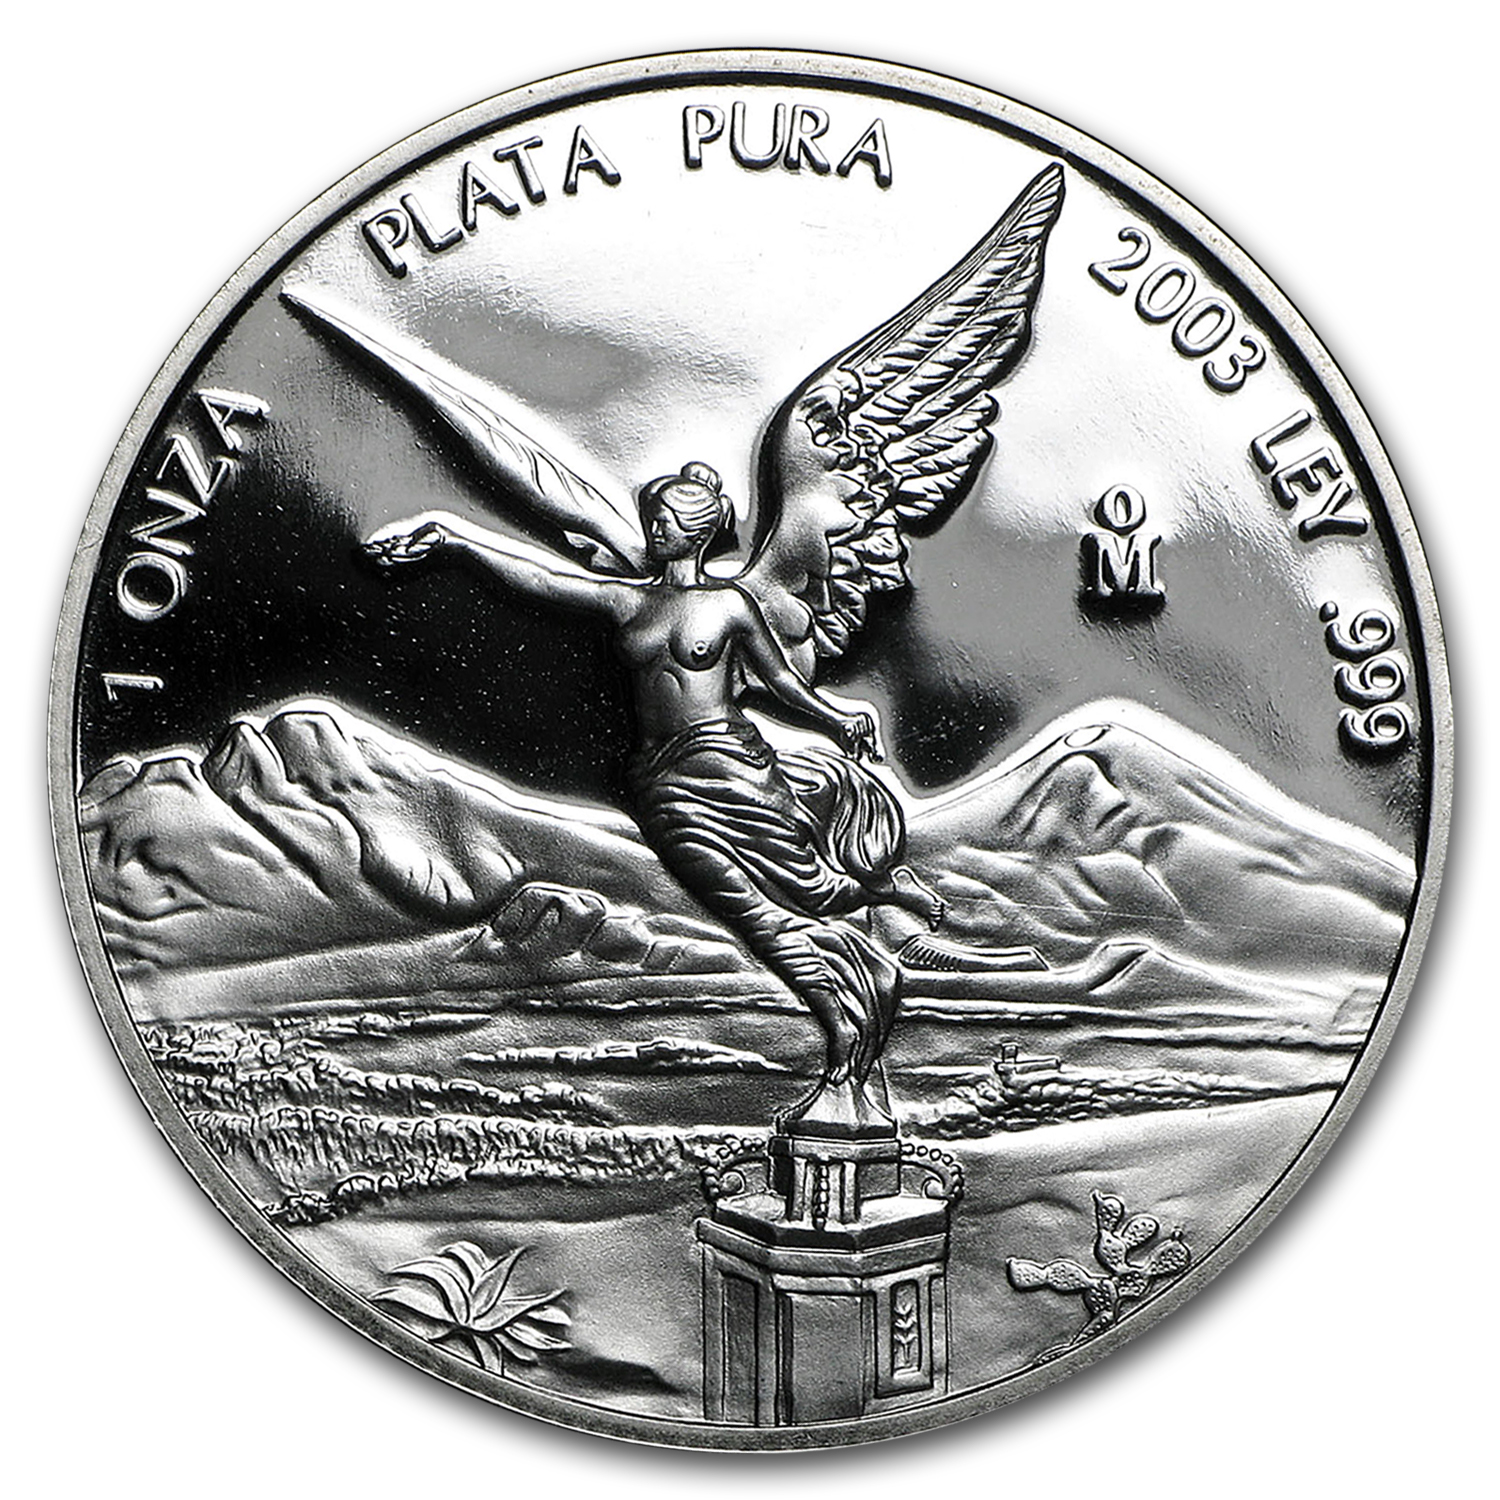 2003 Mexico 1 oz Silver Libertad Proof (In Capsule)